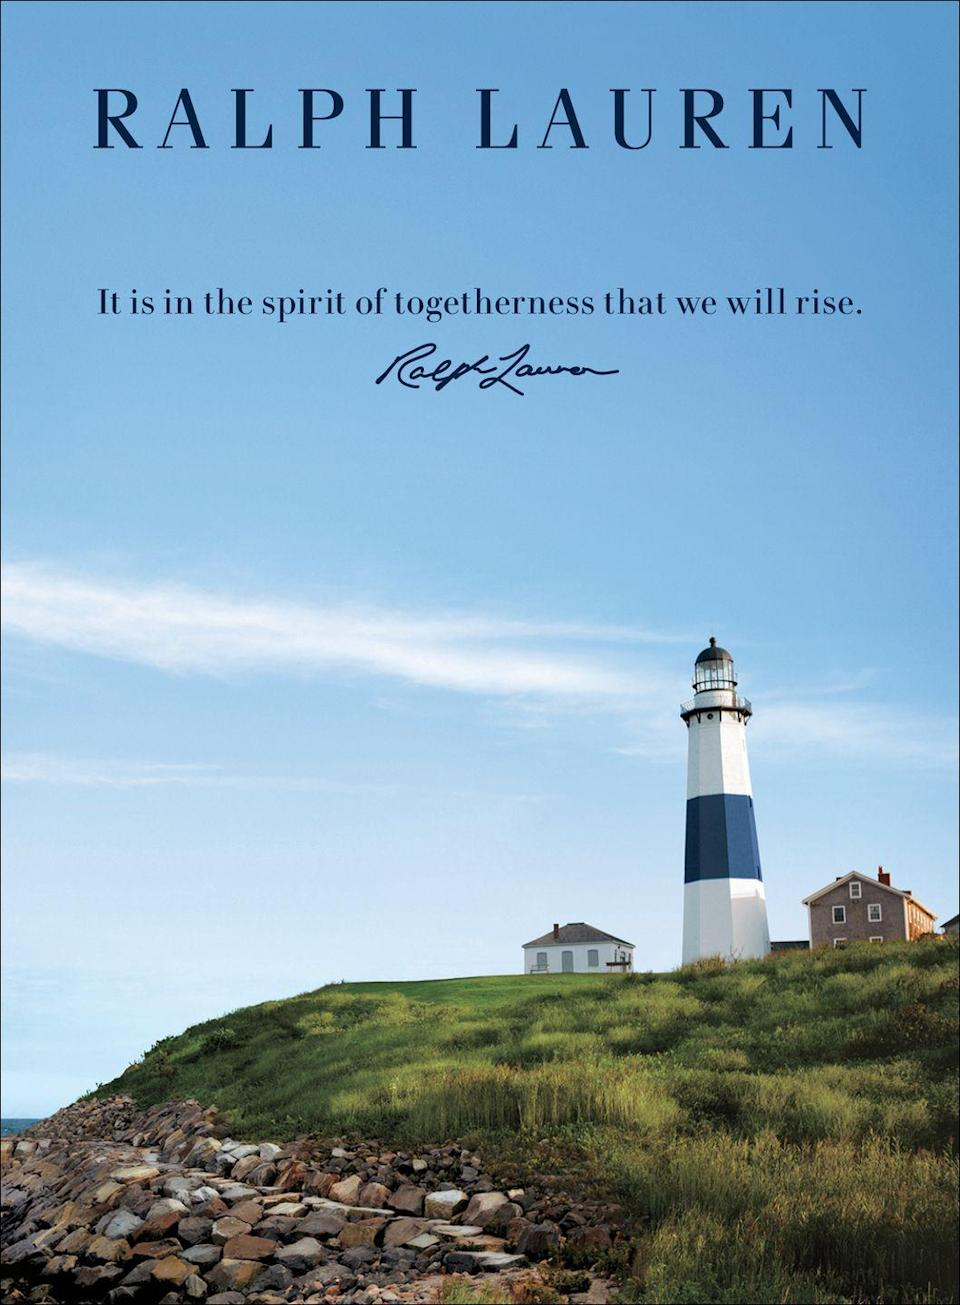 <p>It is in the spirit of togetherness that we will rise.<em> —Ralph Lauren</em></p>